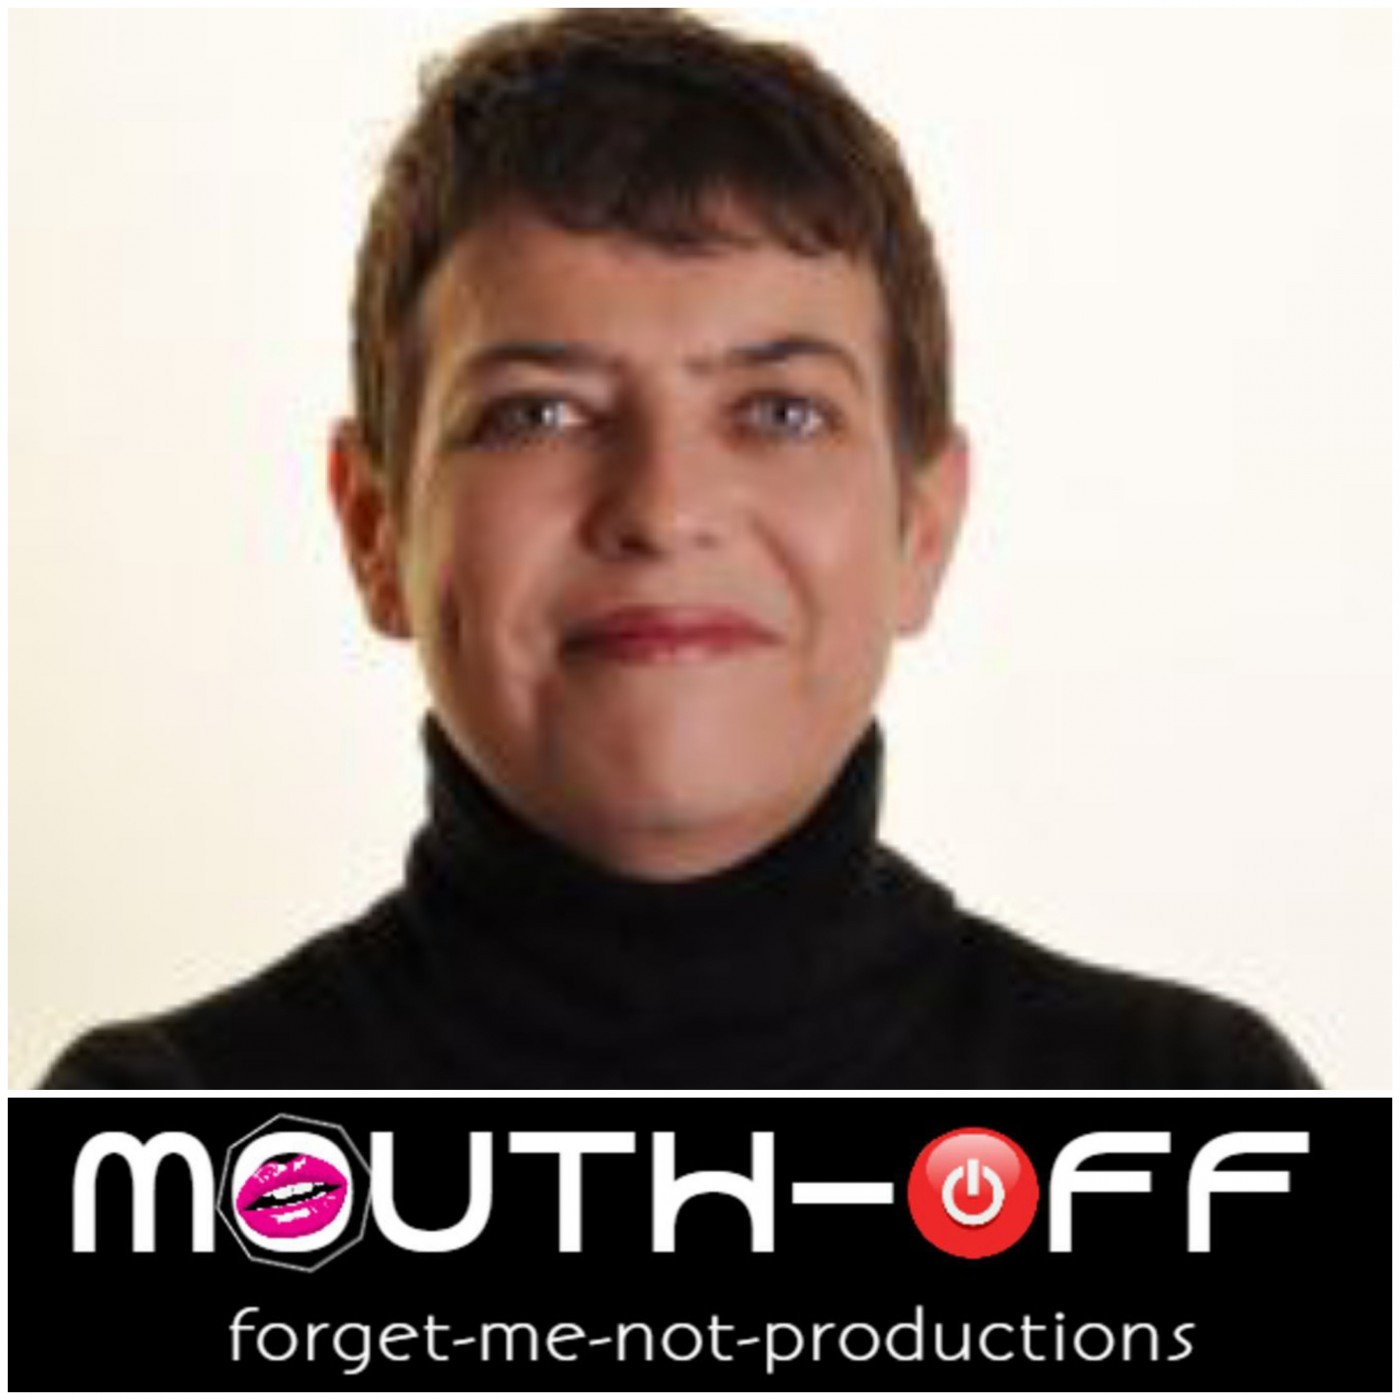 Mouth-Off Episode 5: #time4change